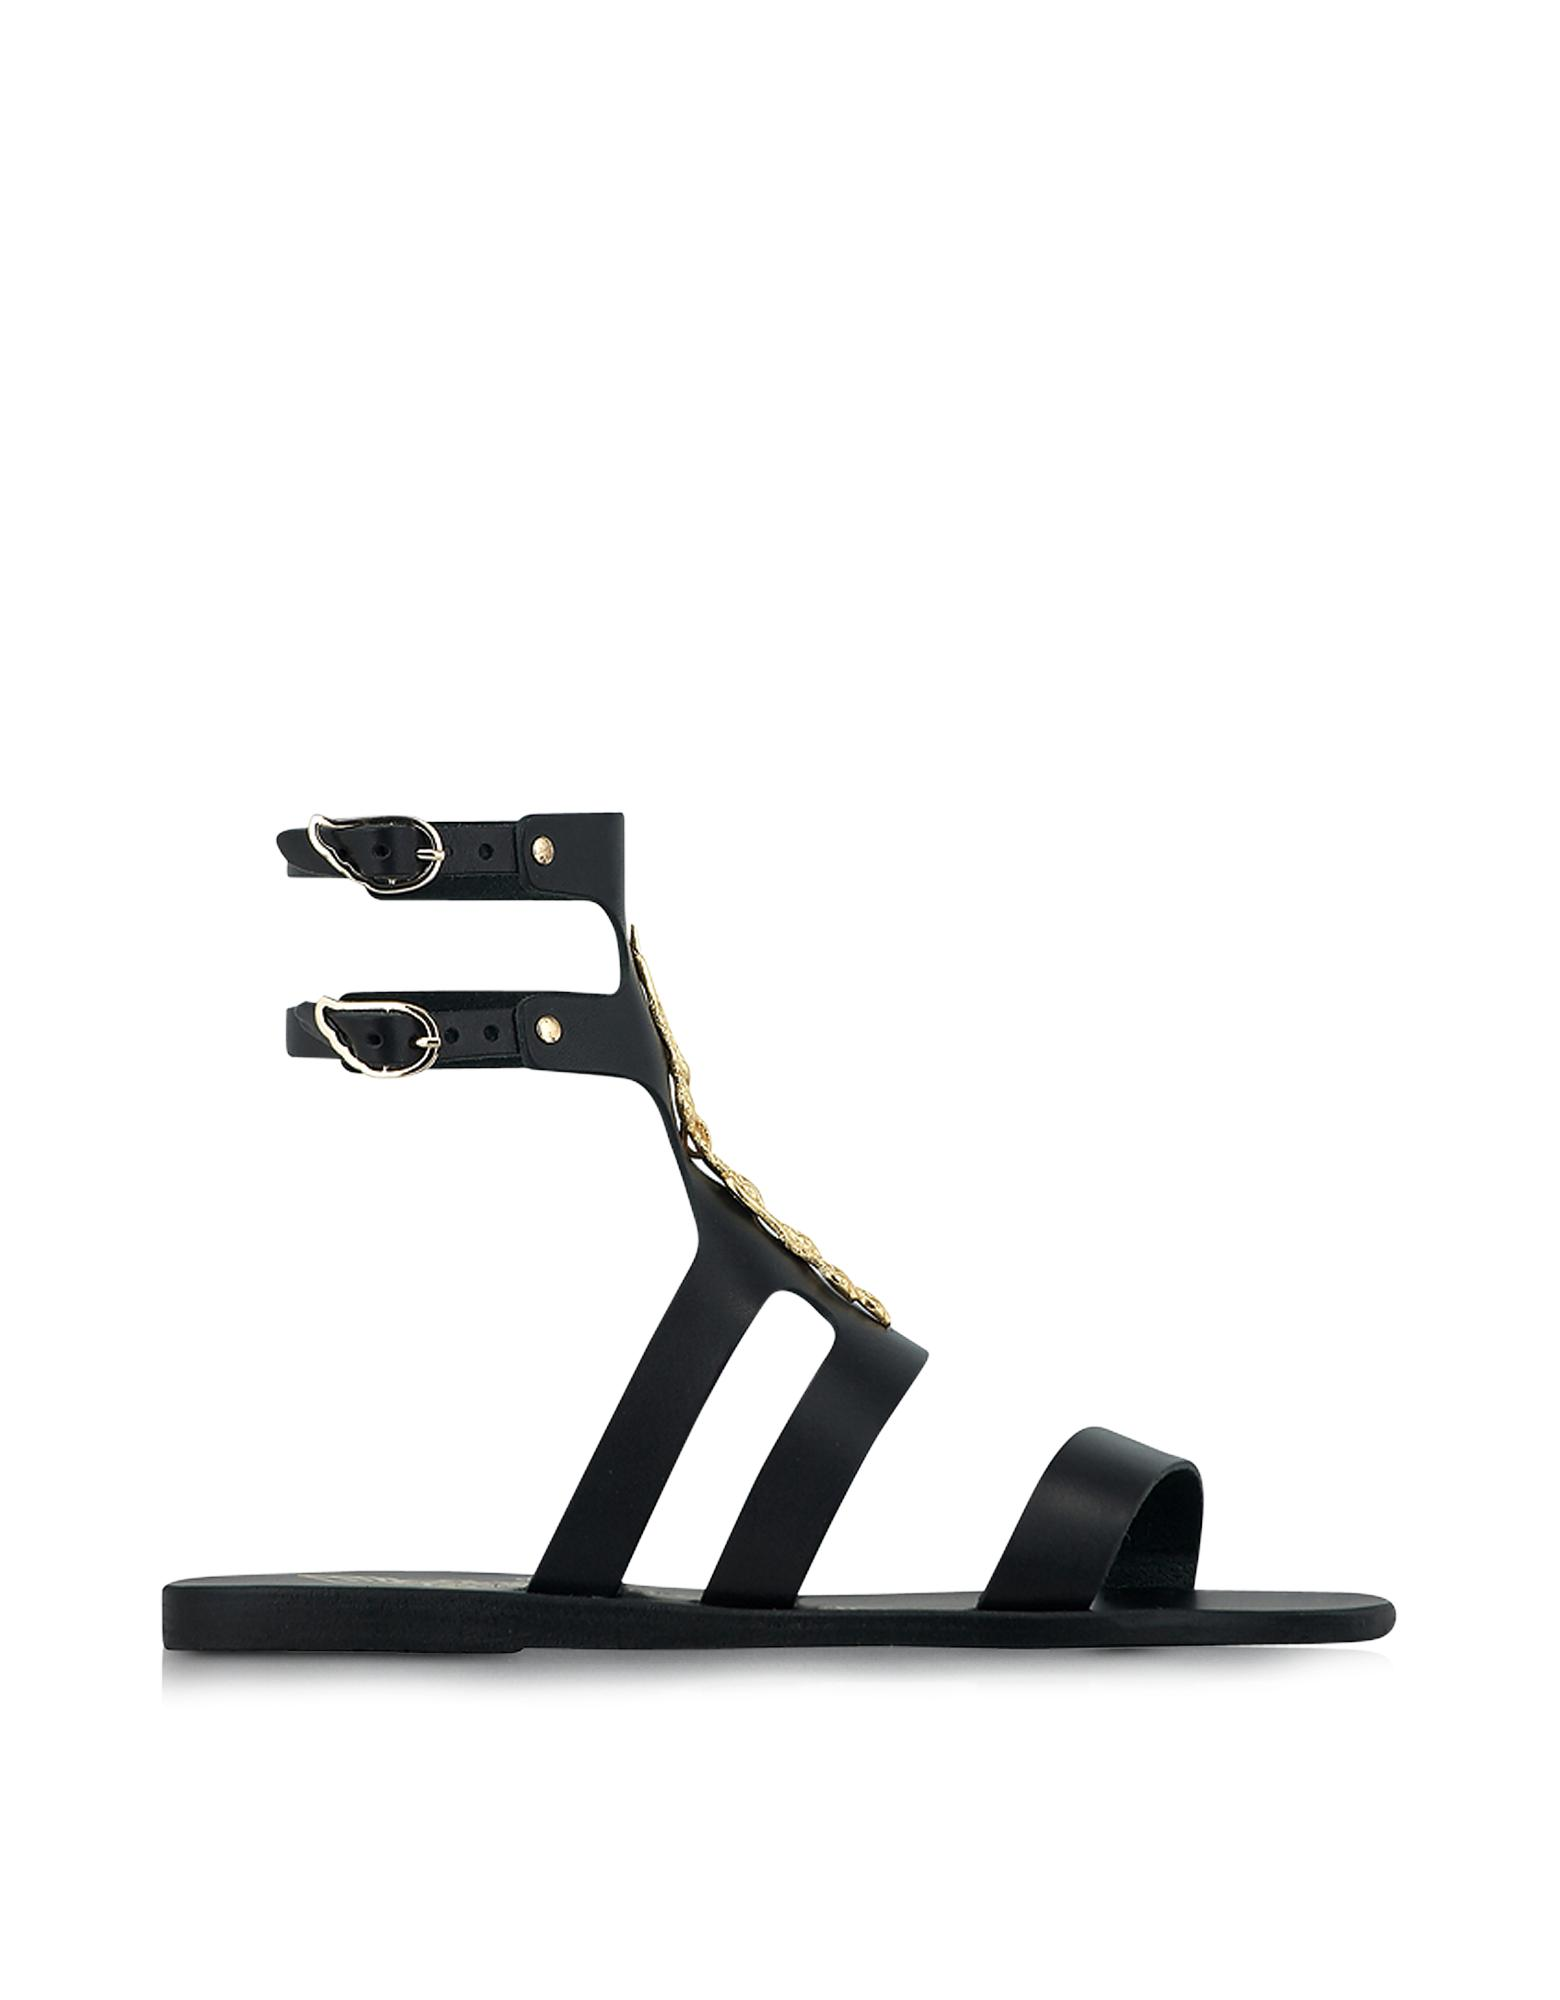 Ancient Greek Sandals with LALAoUNIS Agapi Snakes Black Leather Sandal - Ancient Greek Sandals